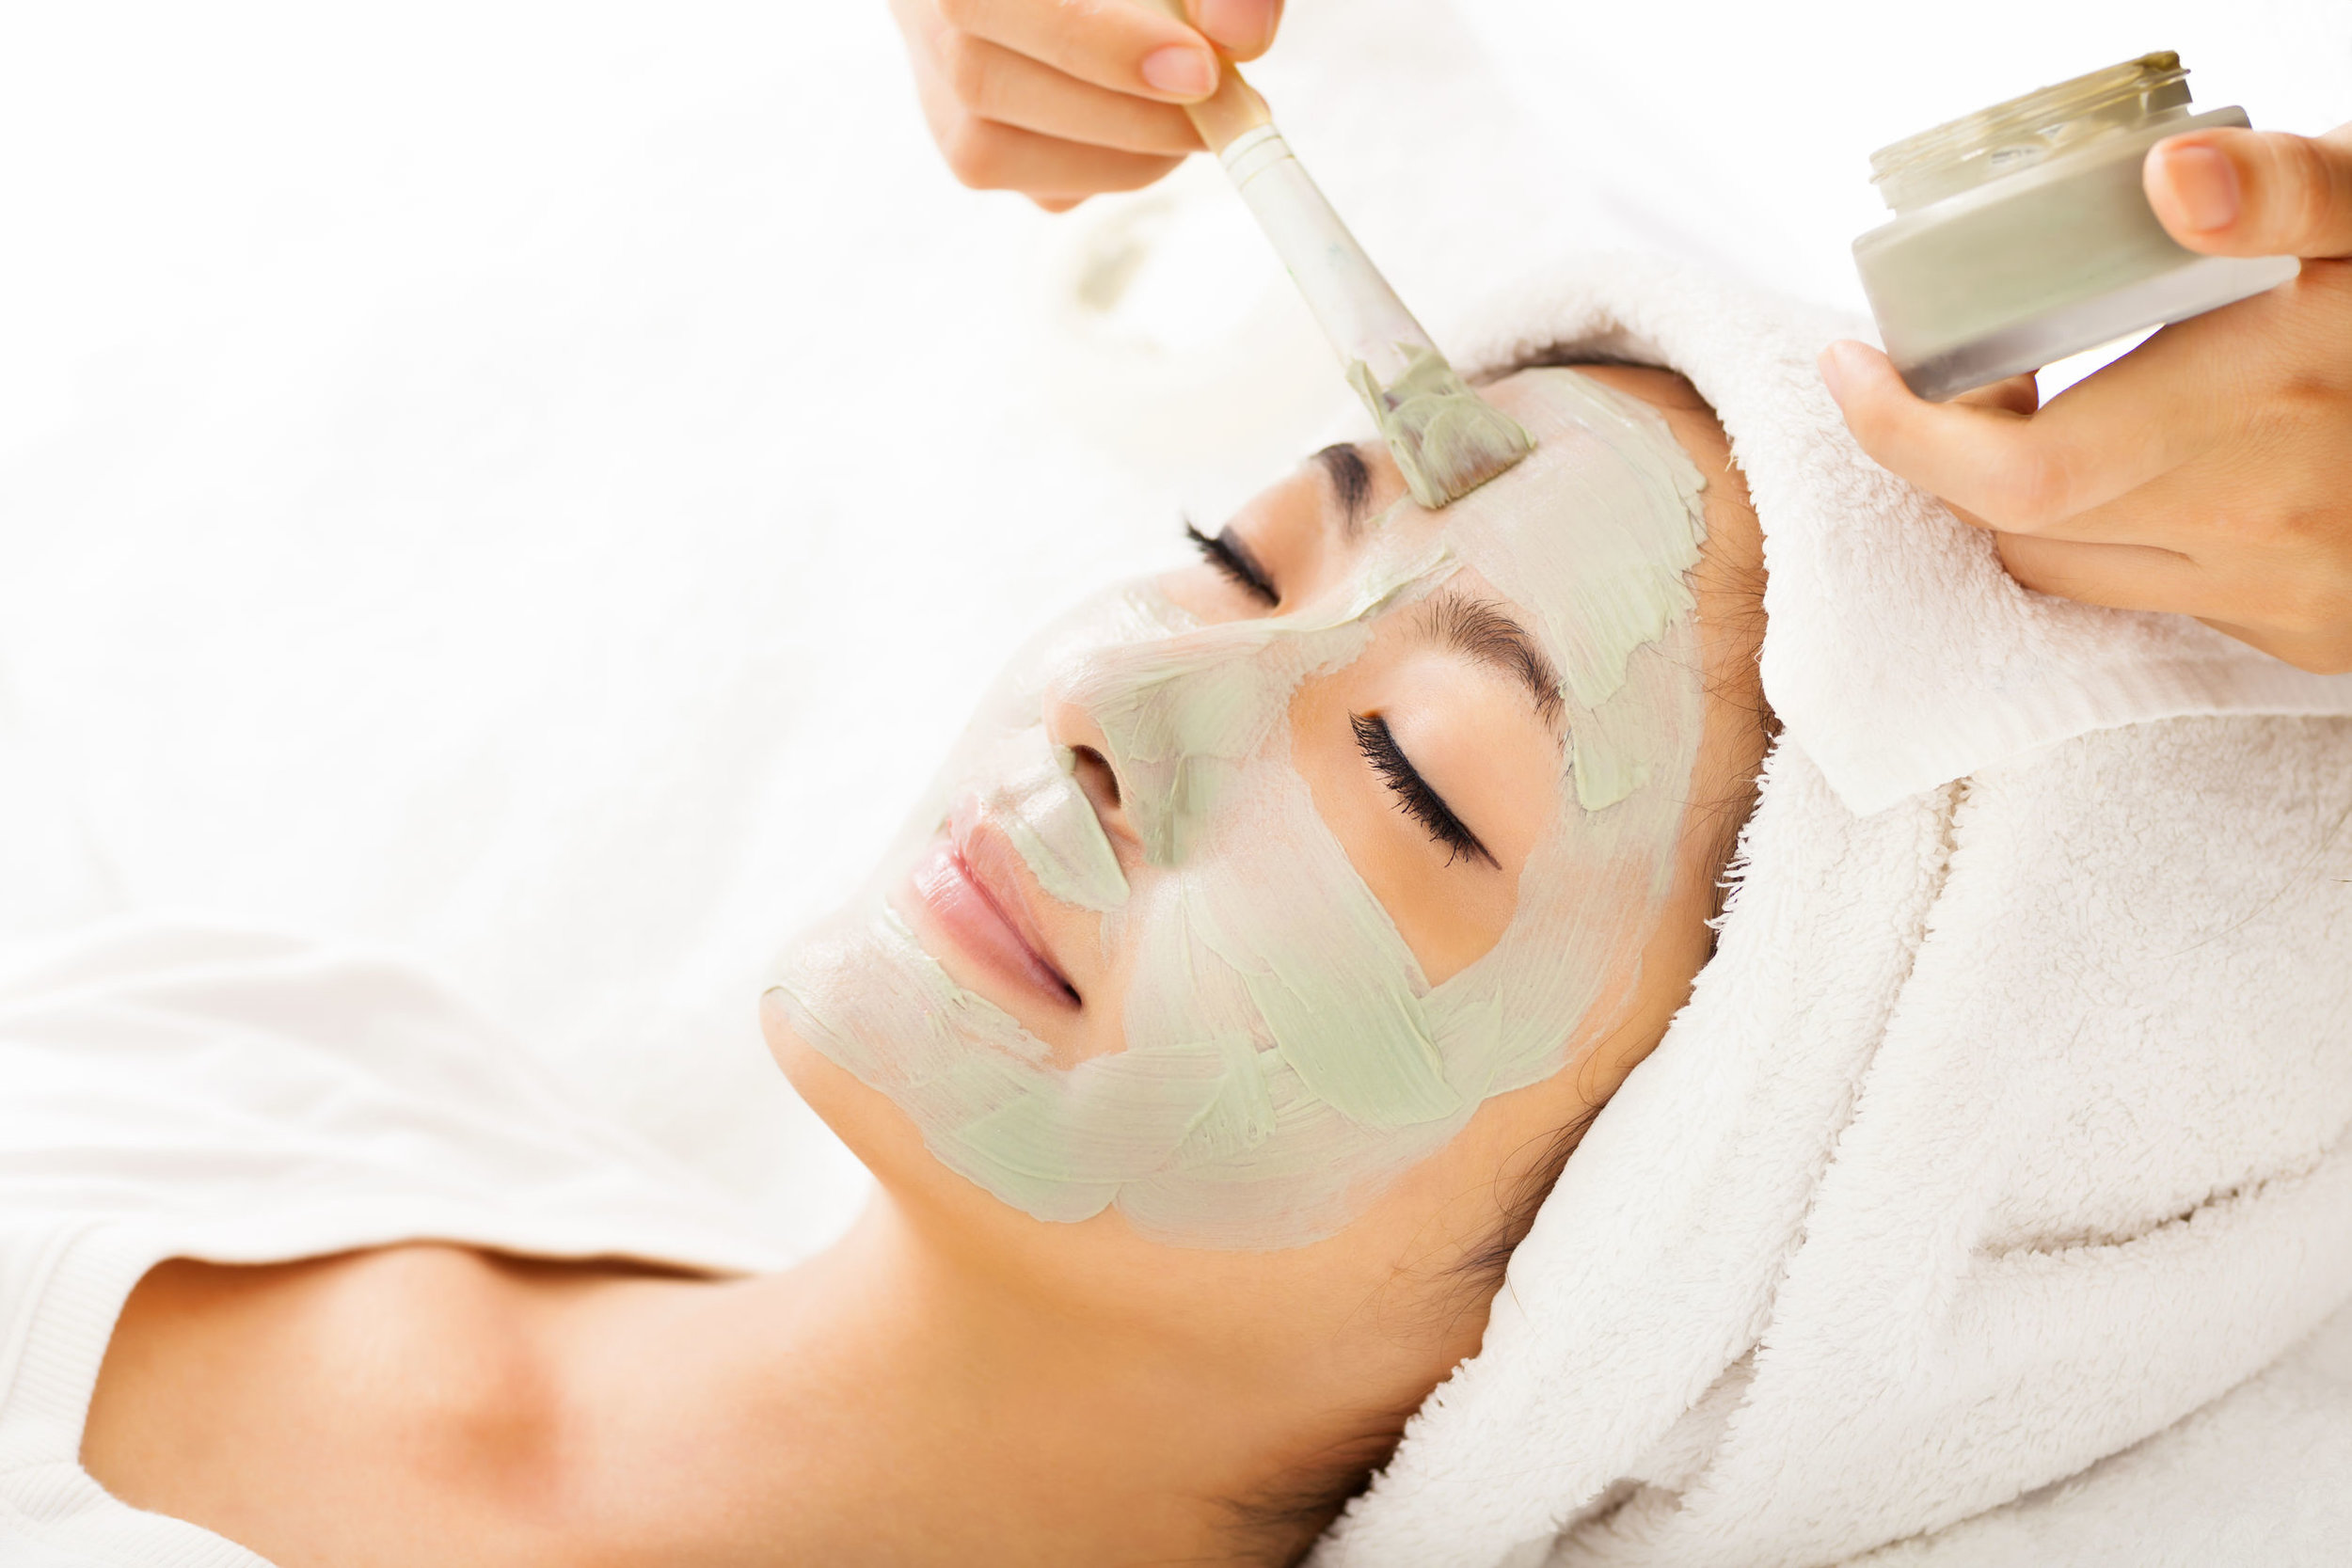 Healthy & beautiful skin for any age. - Personalized facial treatments suitable for men and women. Using only professional products that are scientifically formulated to gently stimulate, firm and tighten skin, promote an even skin tone and clear complexion leaving your skin radiant and glowing.